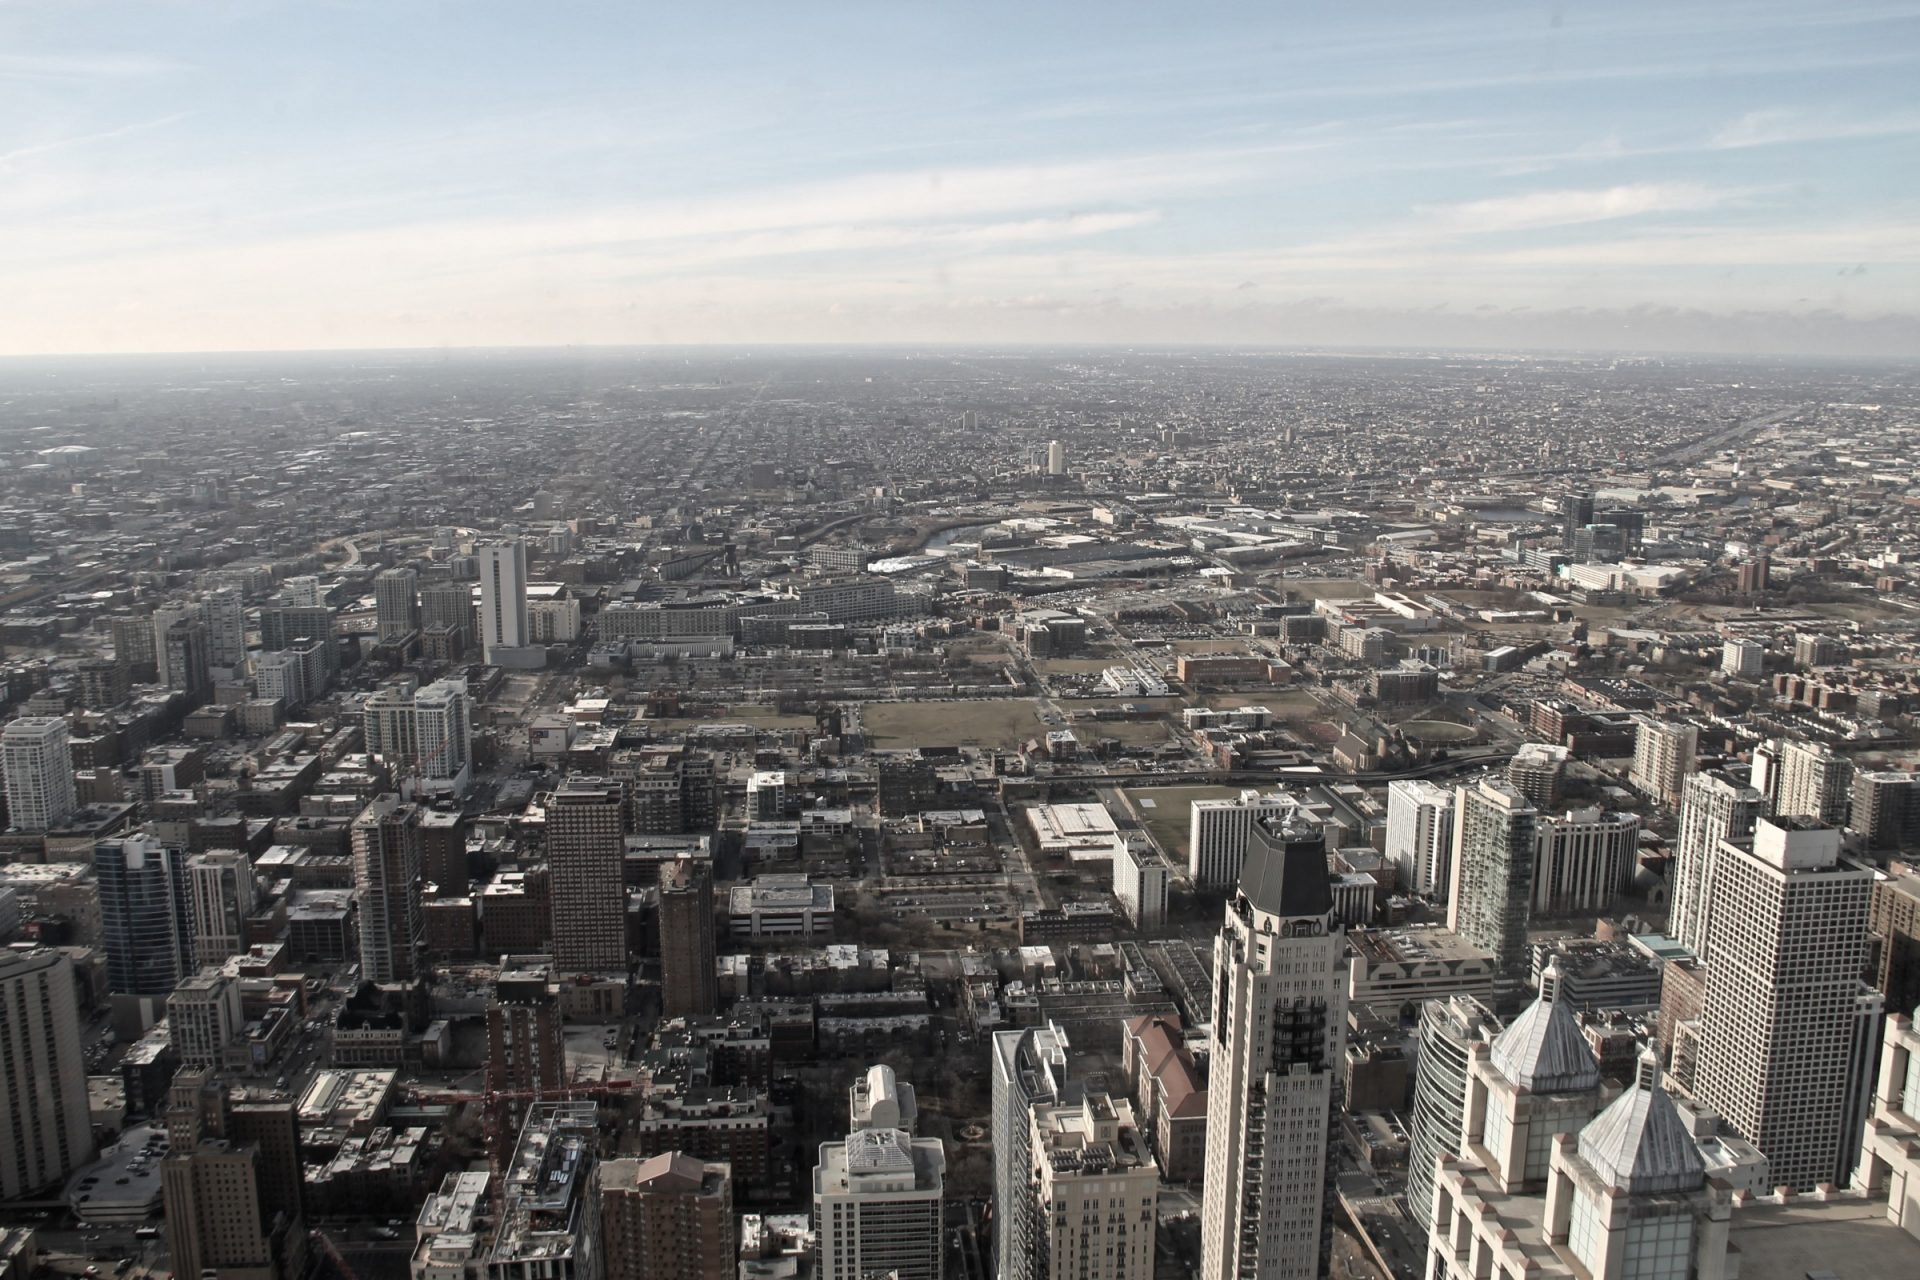 Wide Skyline of City Downtown & Suburbs